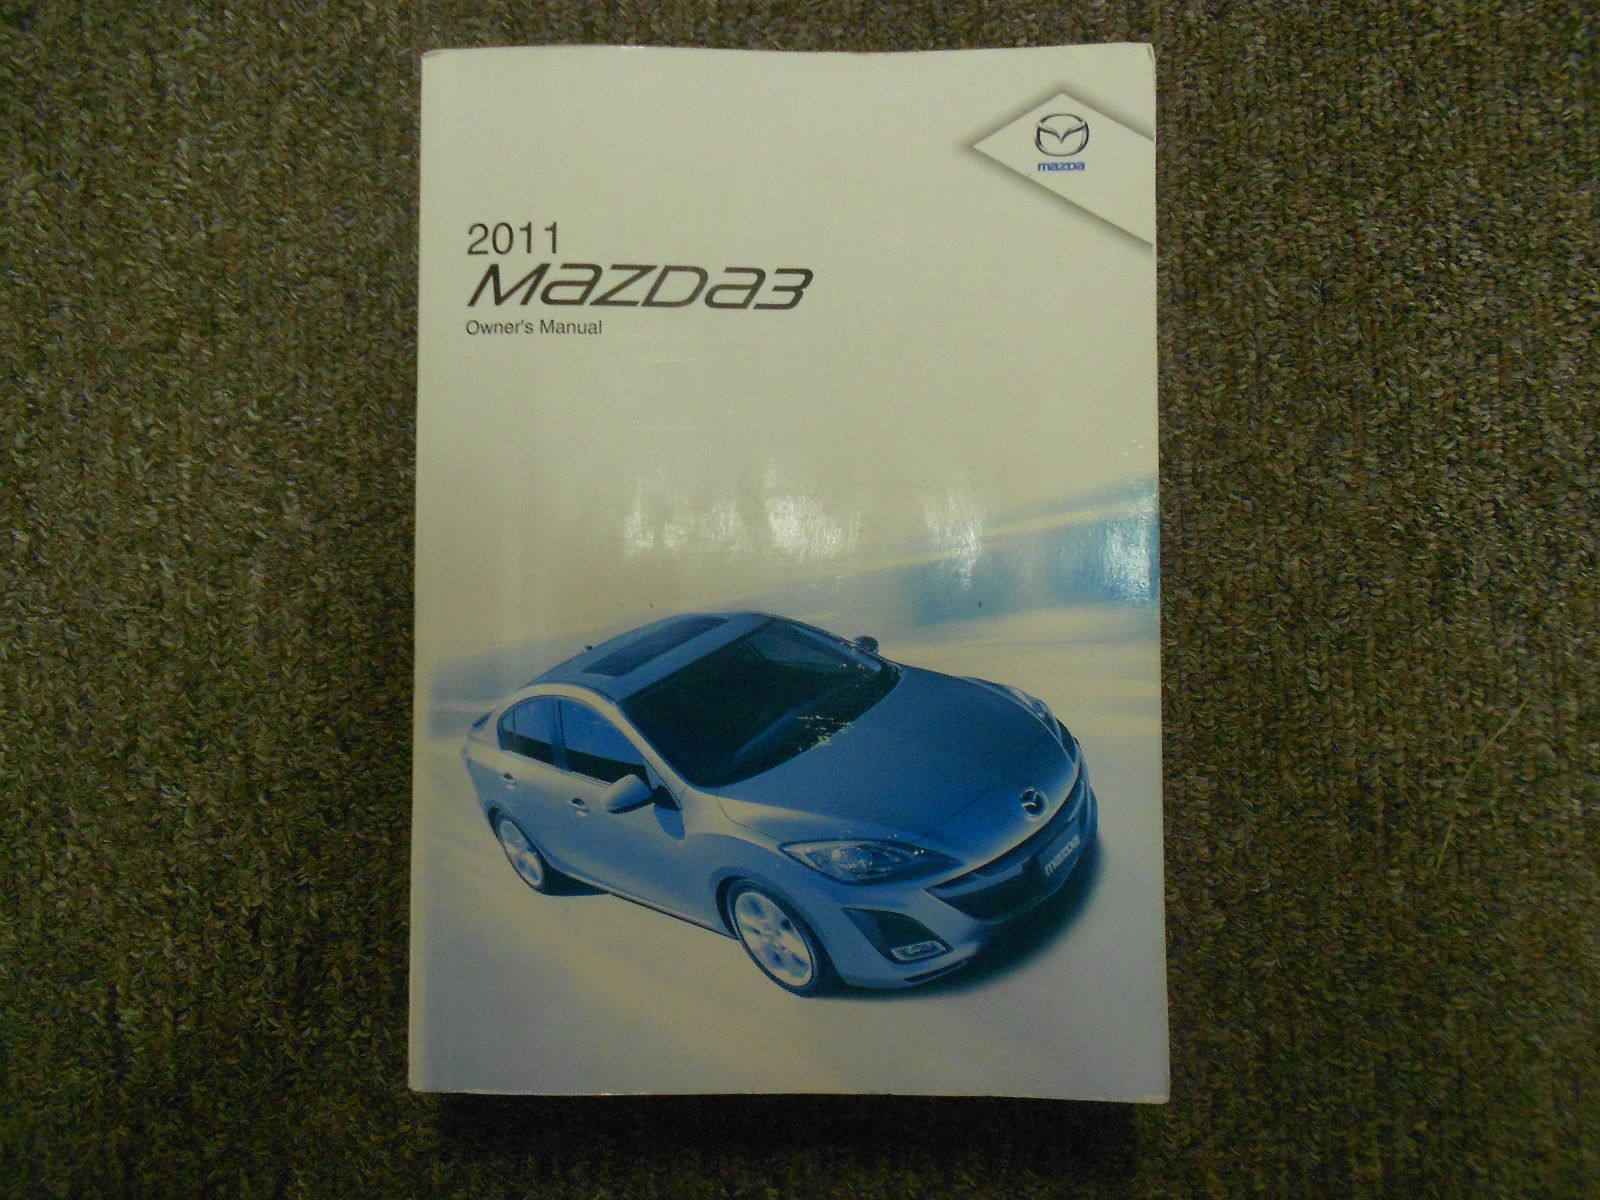 2011 mazda 3 mazda3 mazda 3 owners manual and similar items rh bonanza com 2011 mazda 3 owner manual 2011 mazda 3 owners manual download